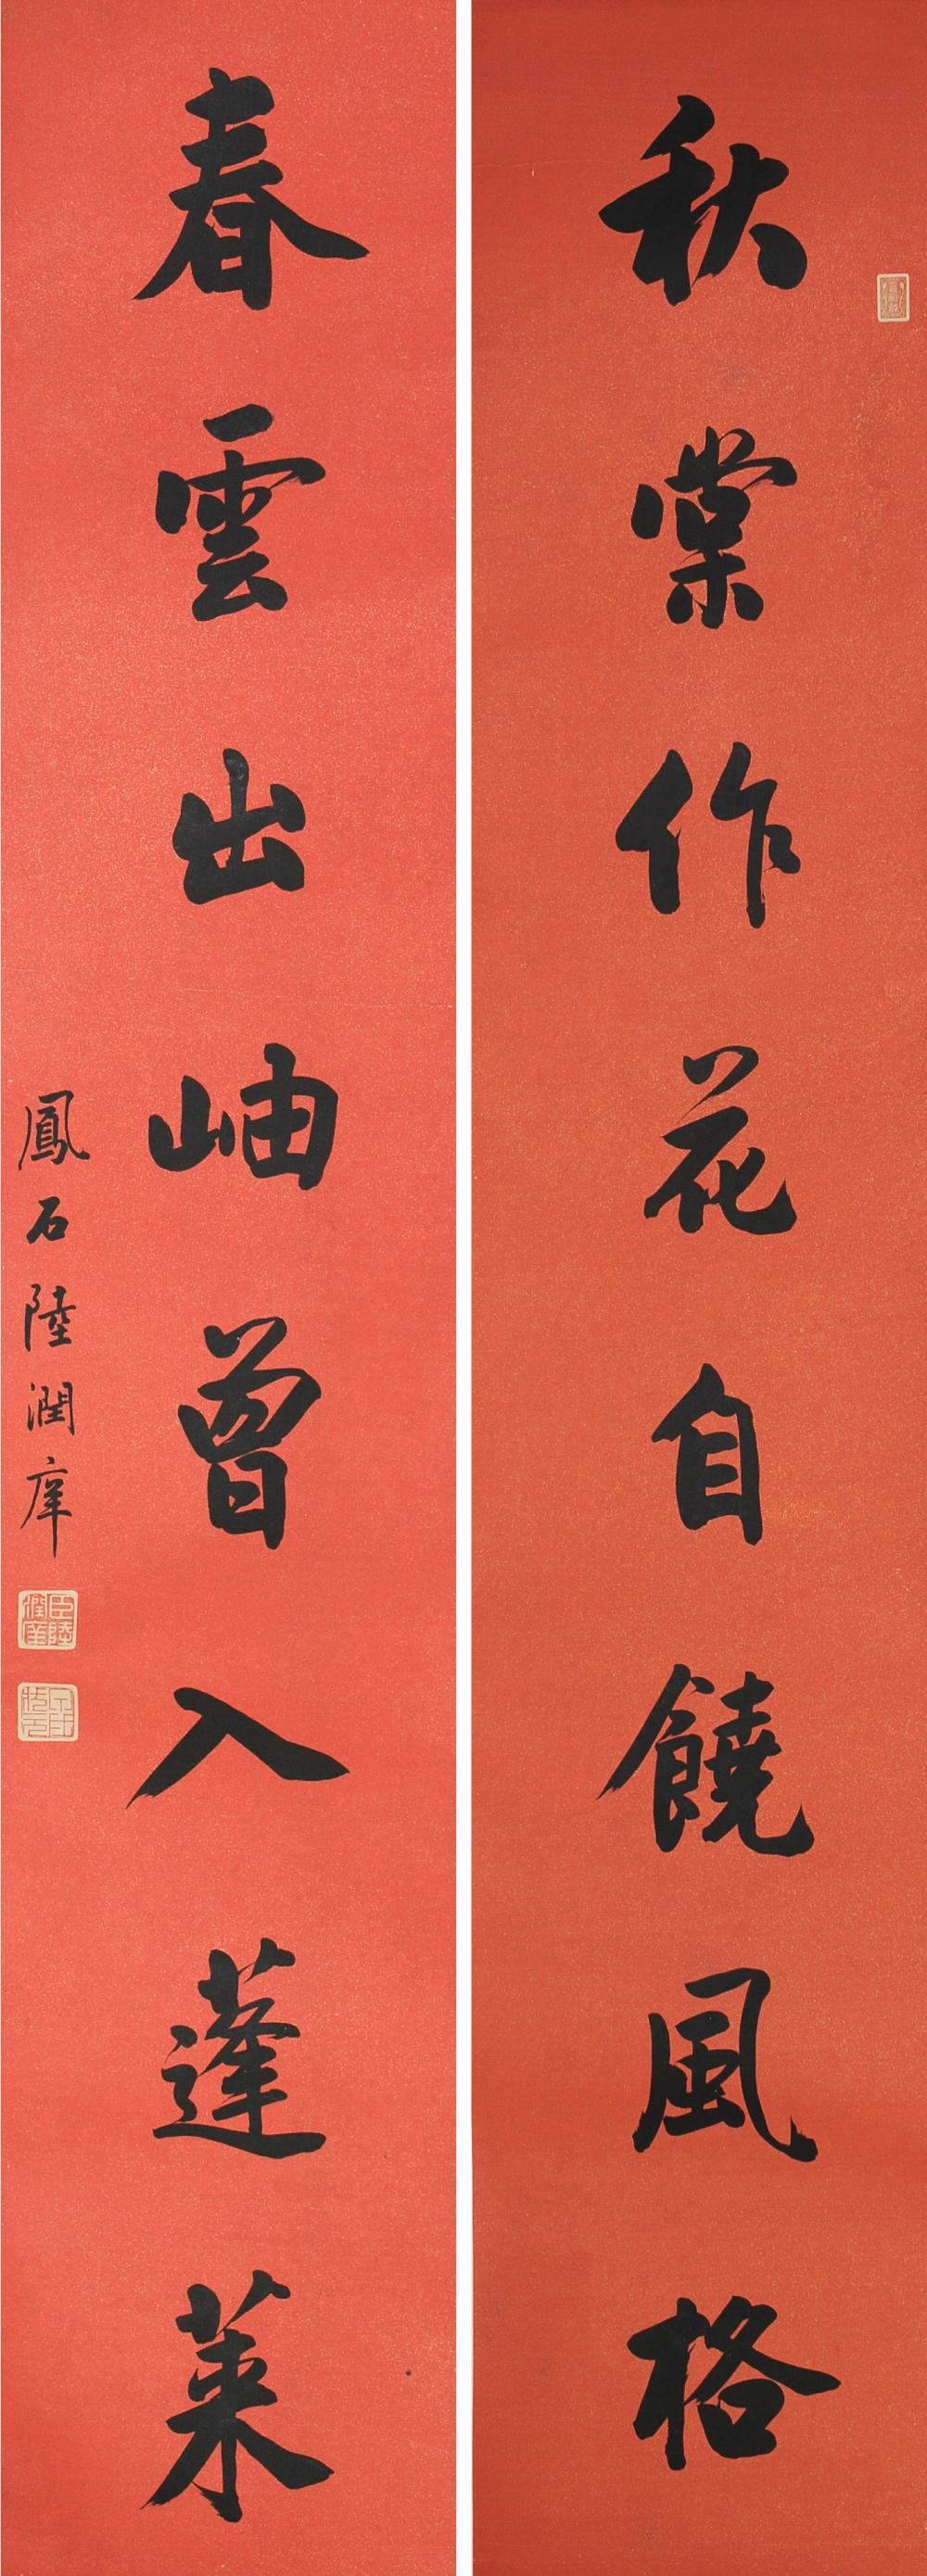 CHINESE CALLIGRAPHY COUPLET BY LU RUNYANG